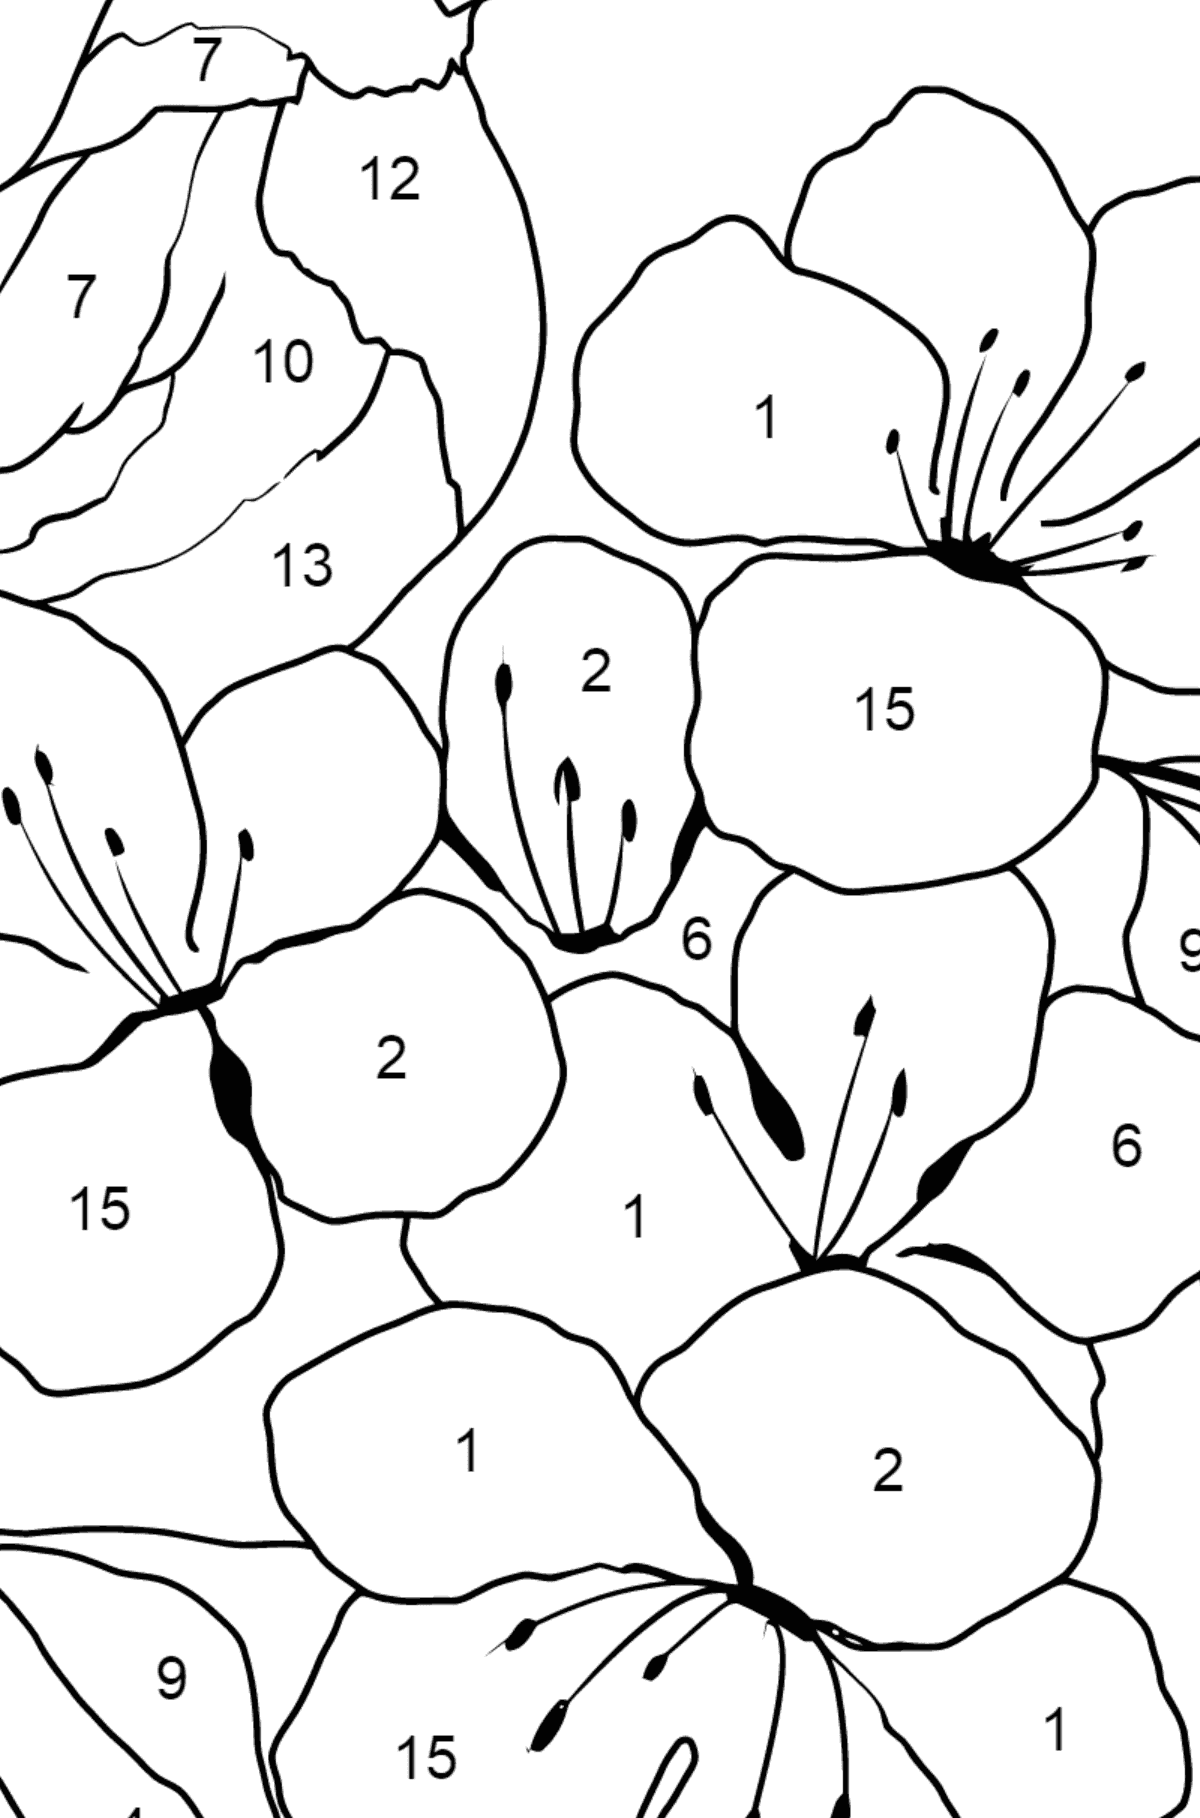 Summer Coloring Page - A Bird is Chirping on the Branch of an Apple Tree for Kids  - Color by Number